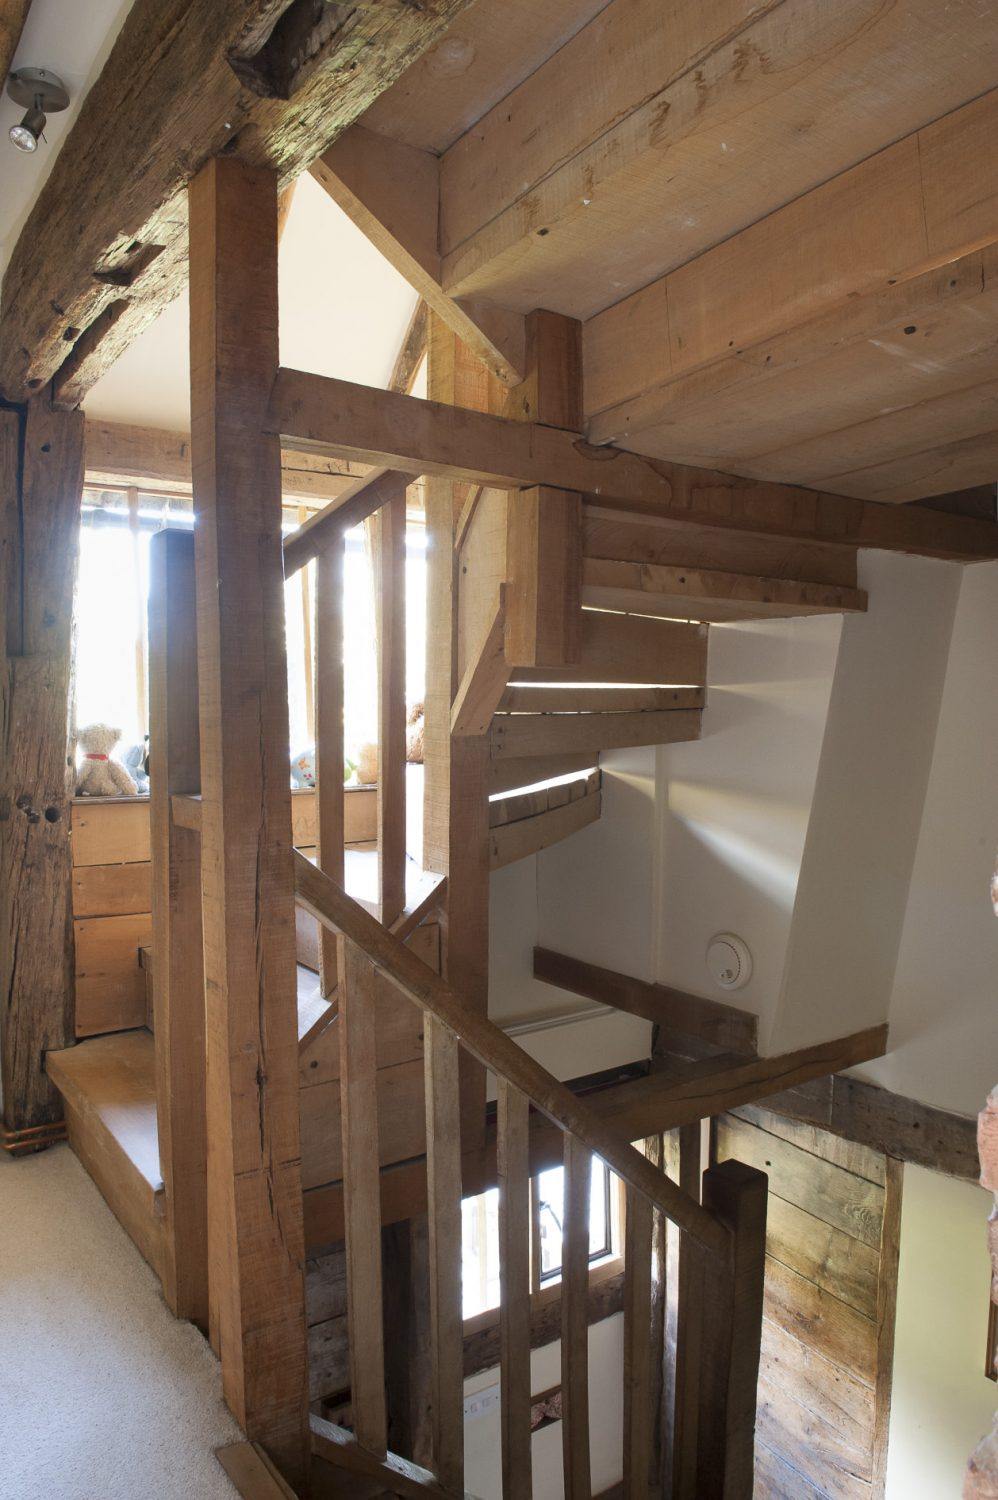 Green oak was used to make the stairs, primarily for its inherent flexible qualities which allowed it to mould around the huge central chimney and move with the varying temperatures within the house